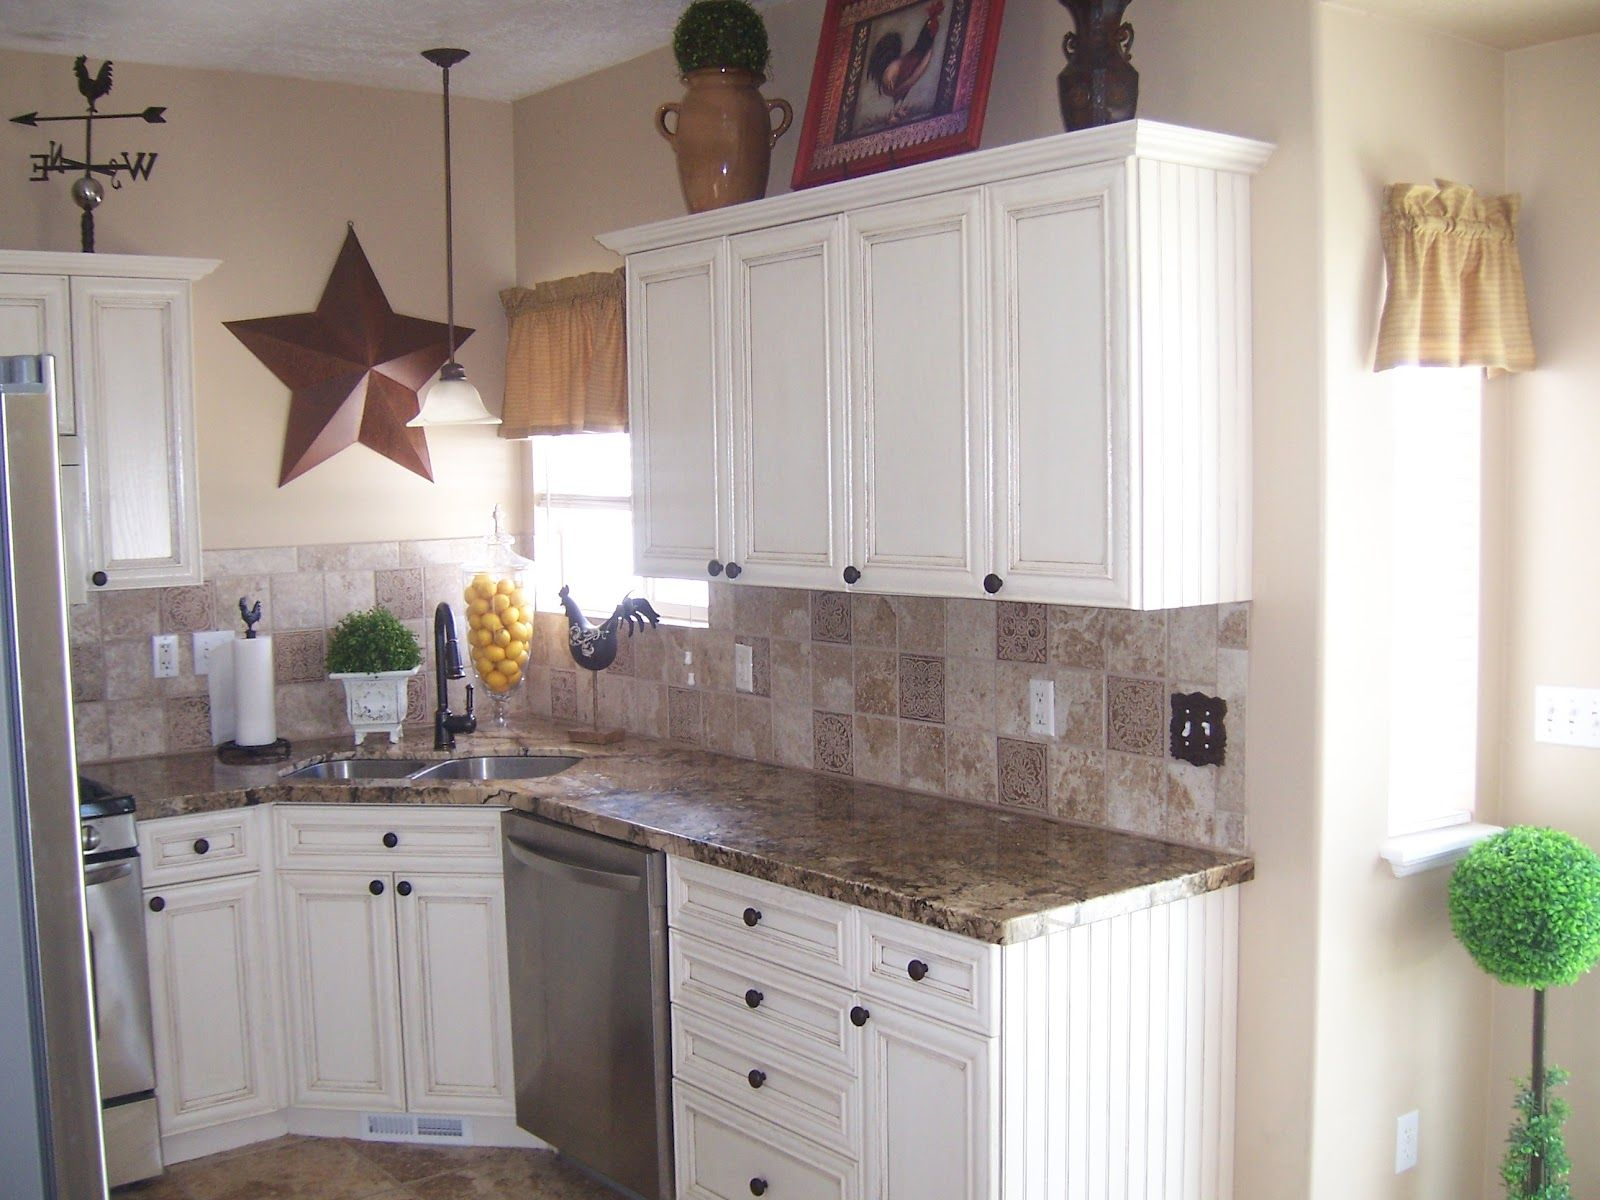 formica kitchen countertops white cabinets with laminate countertops Laminate counter tops were replaced with a beautiful granite